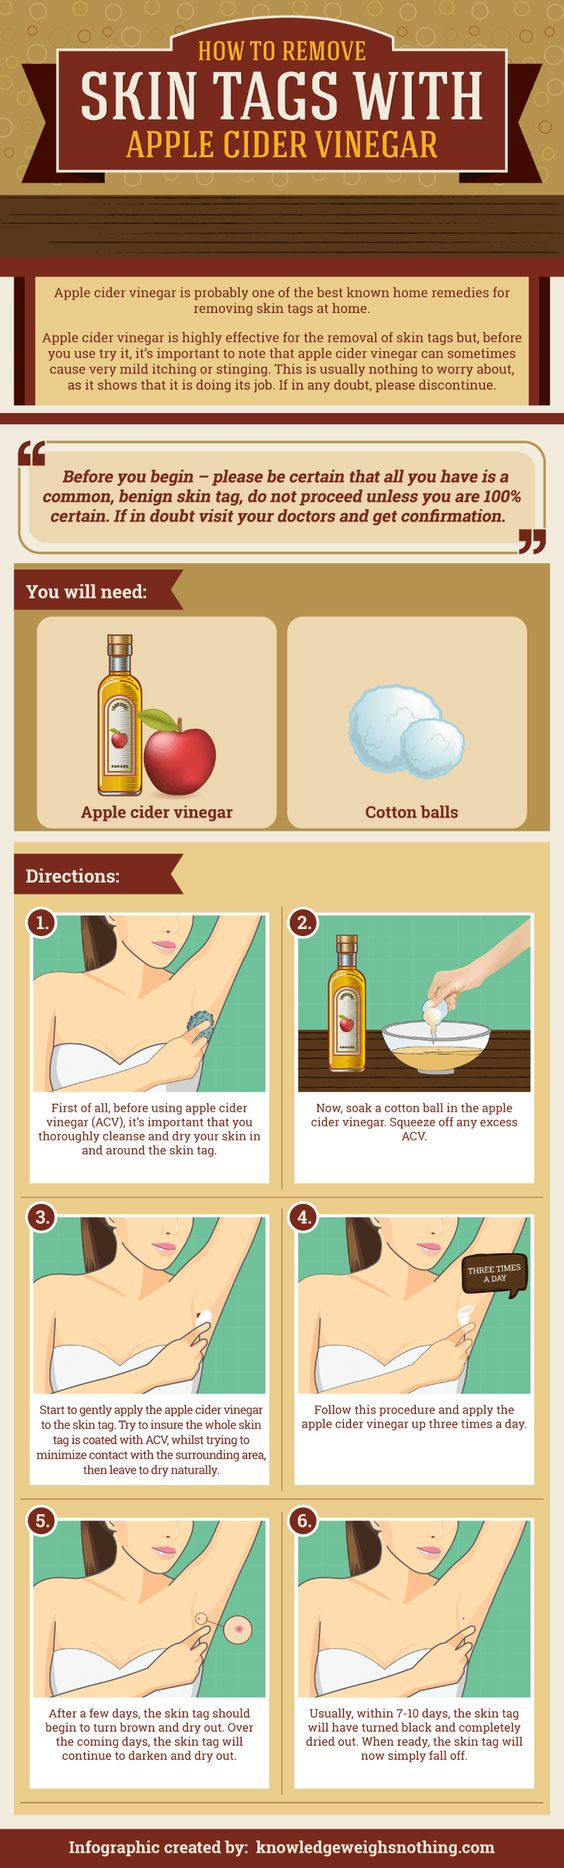 Skin tag removal with apple cider vinegar